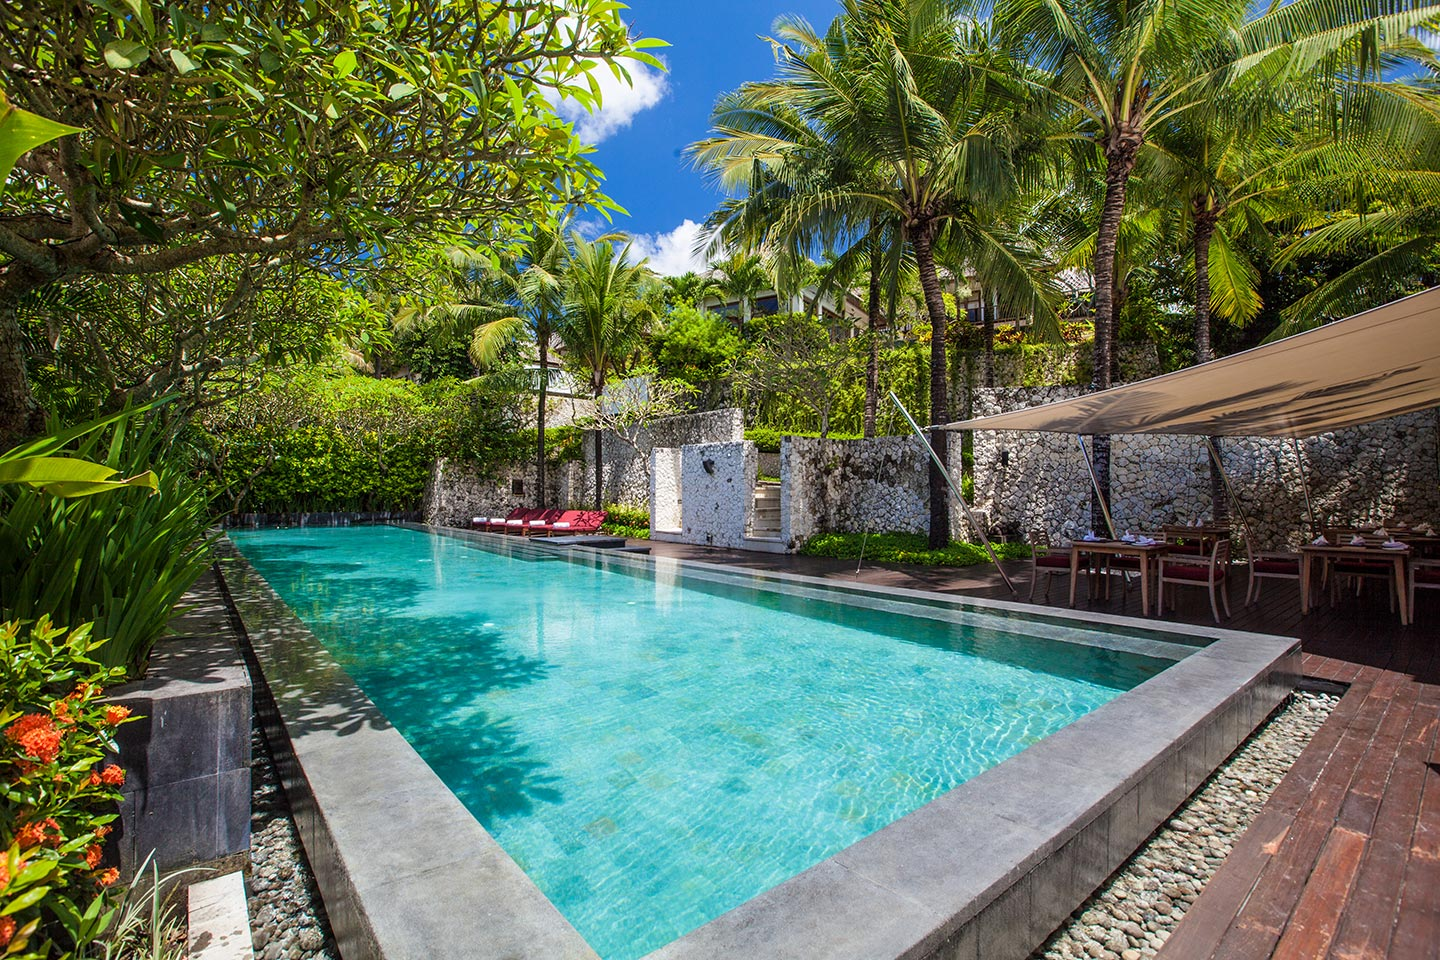 5 Star Hotel in Jimbaran Bay,Bali